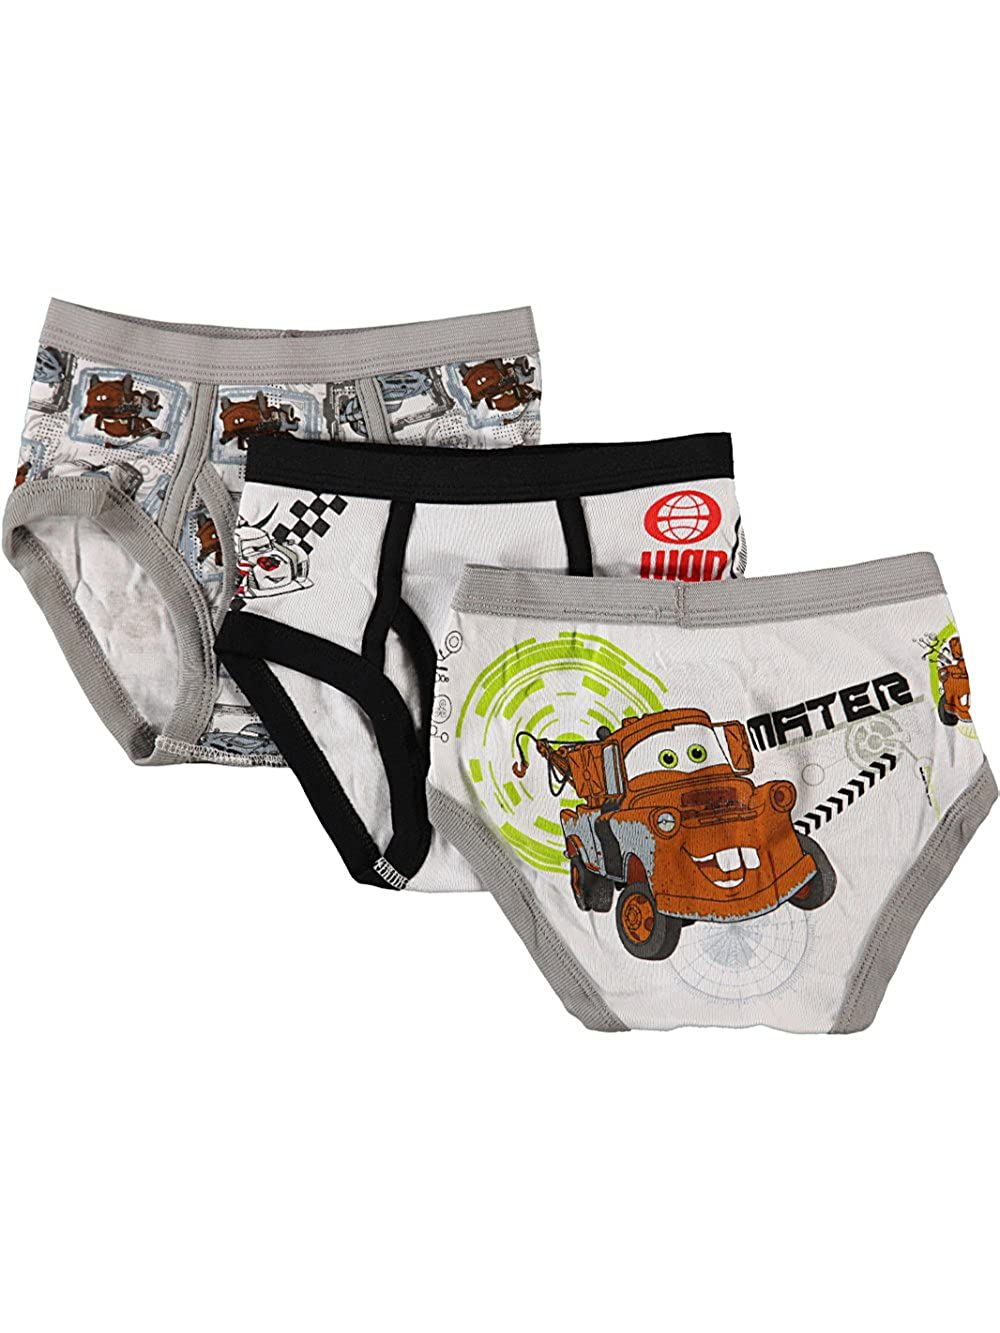 Disney Cars Little Boys' Toddler Checkered Flag 3-Pack Briefs 2t - 3t 00_MBXRUYWO_SF